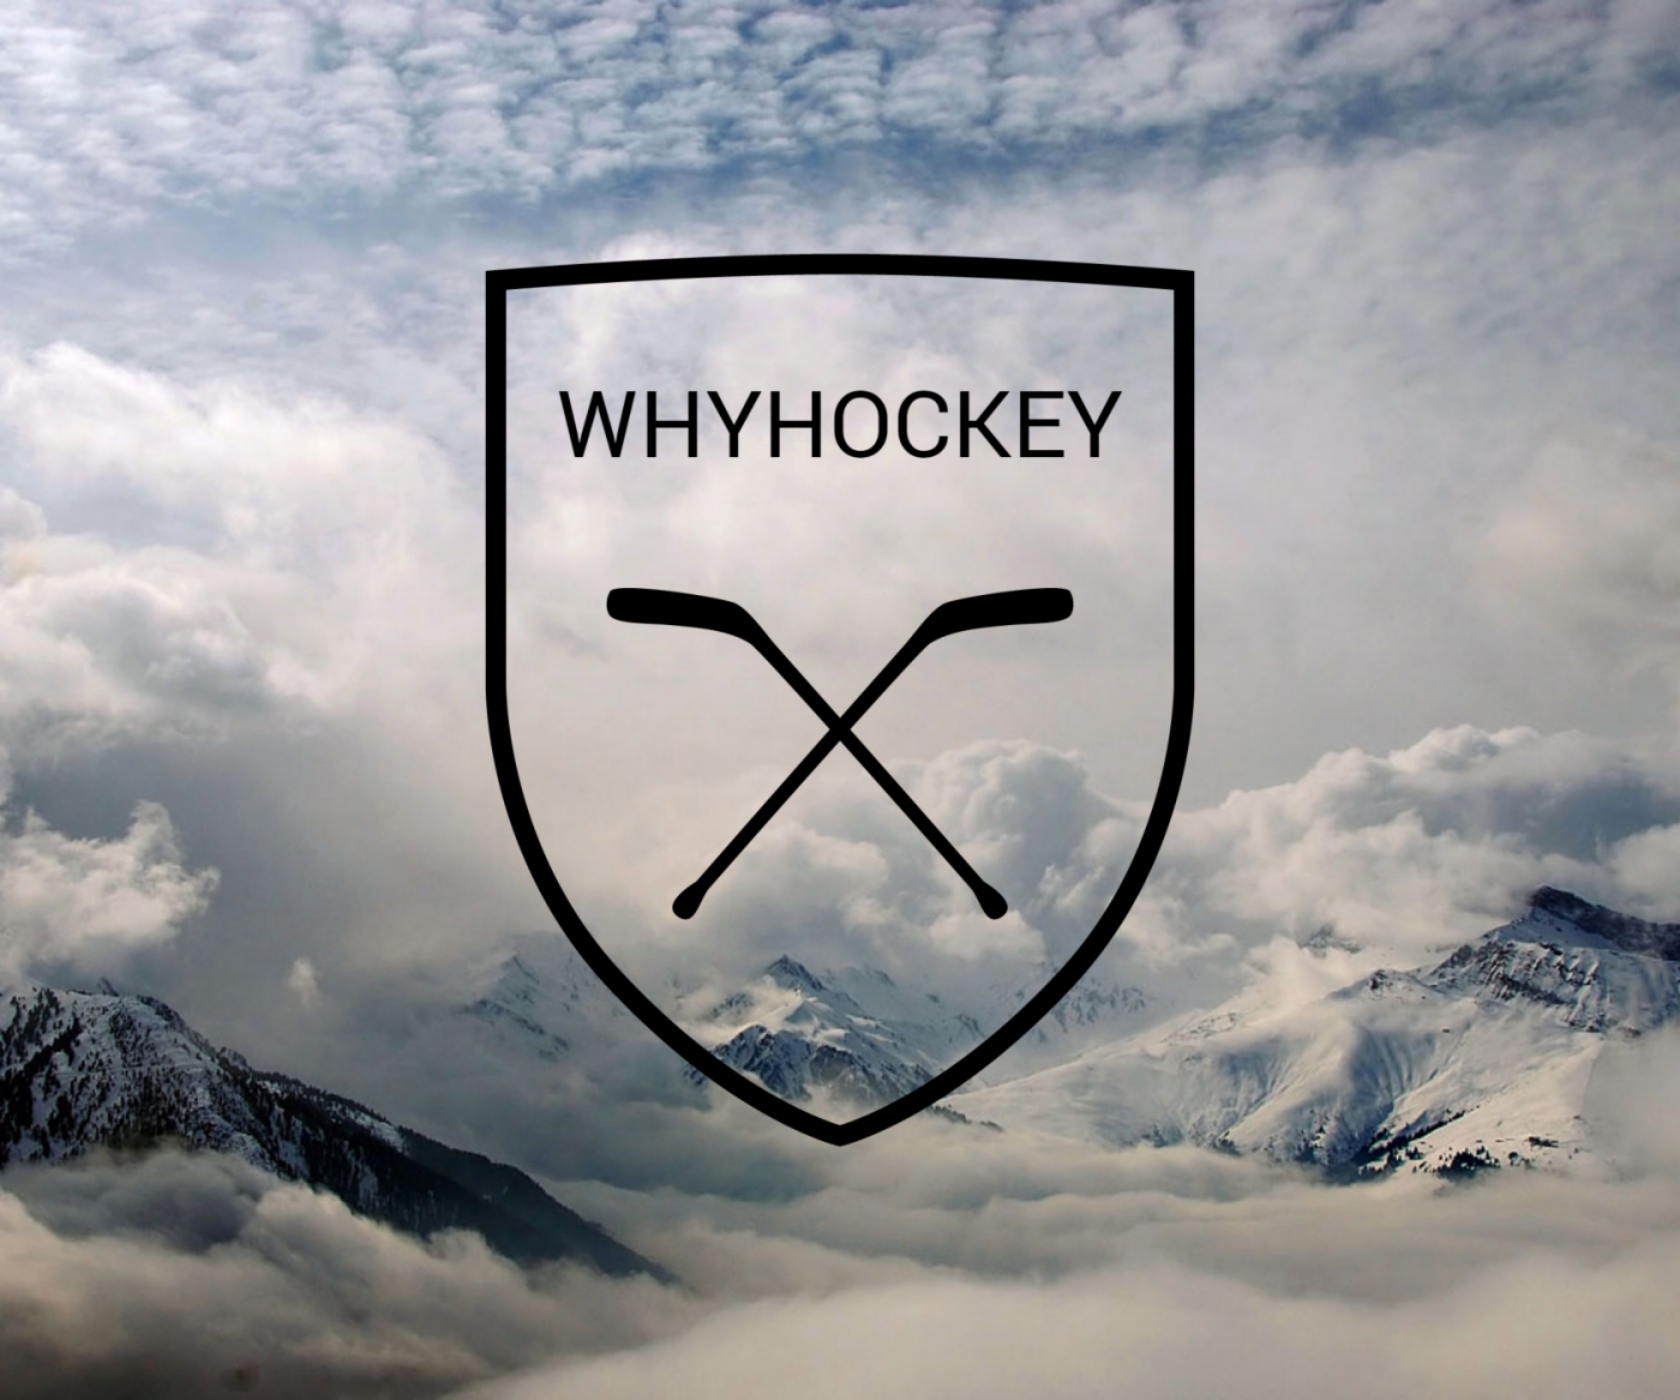 WhyHockey 12.6.18: Straight No Chaser